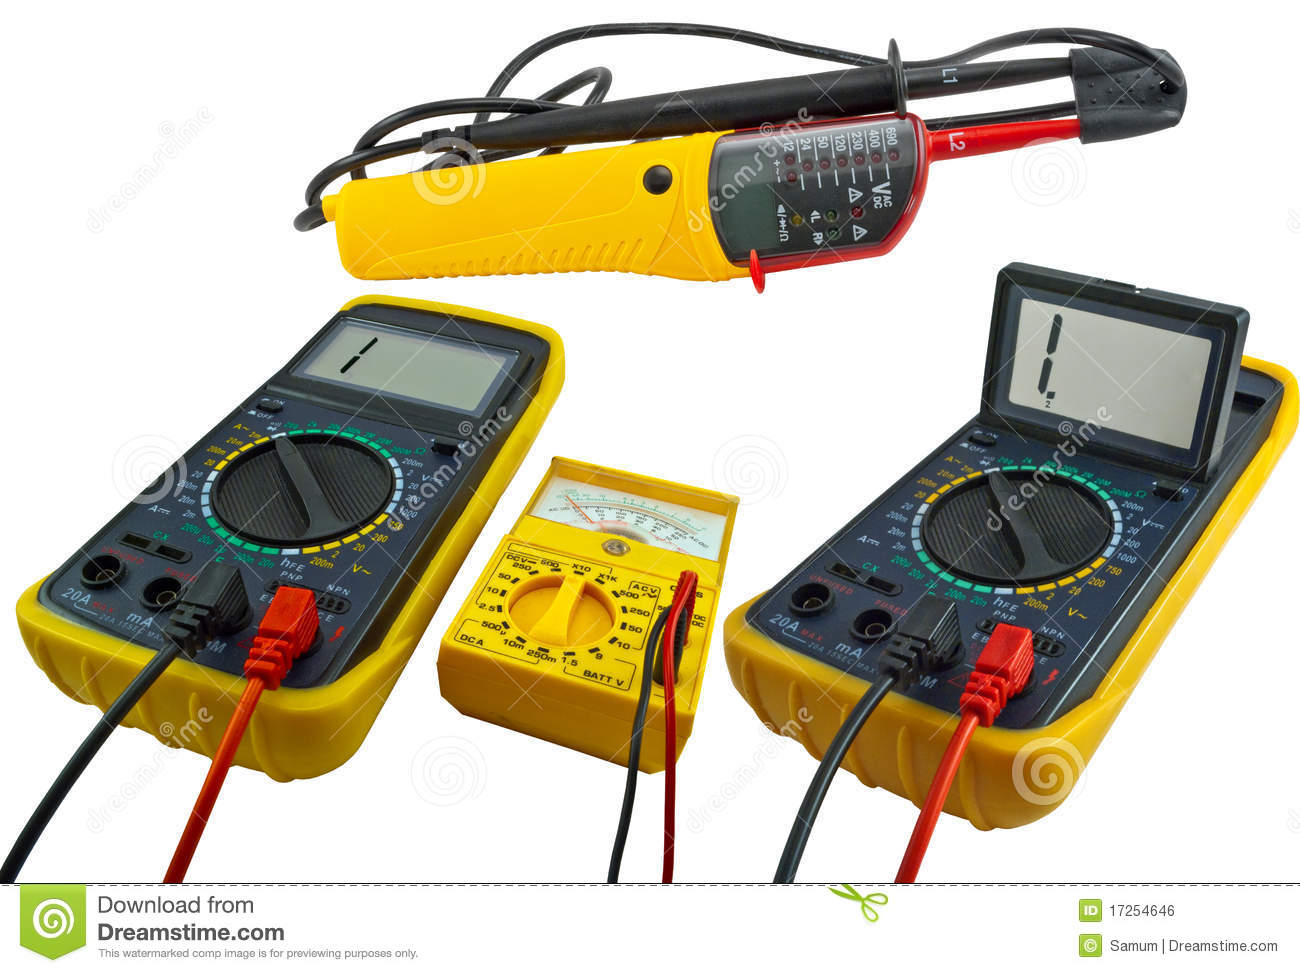 Electronic Measuring Devices : Digital measuring devices royalty free stock image